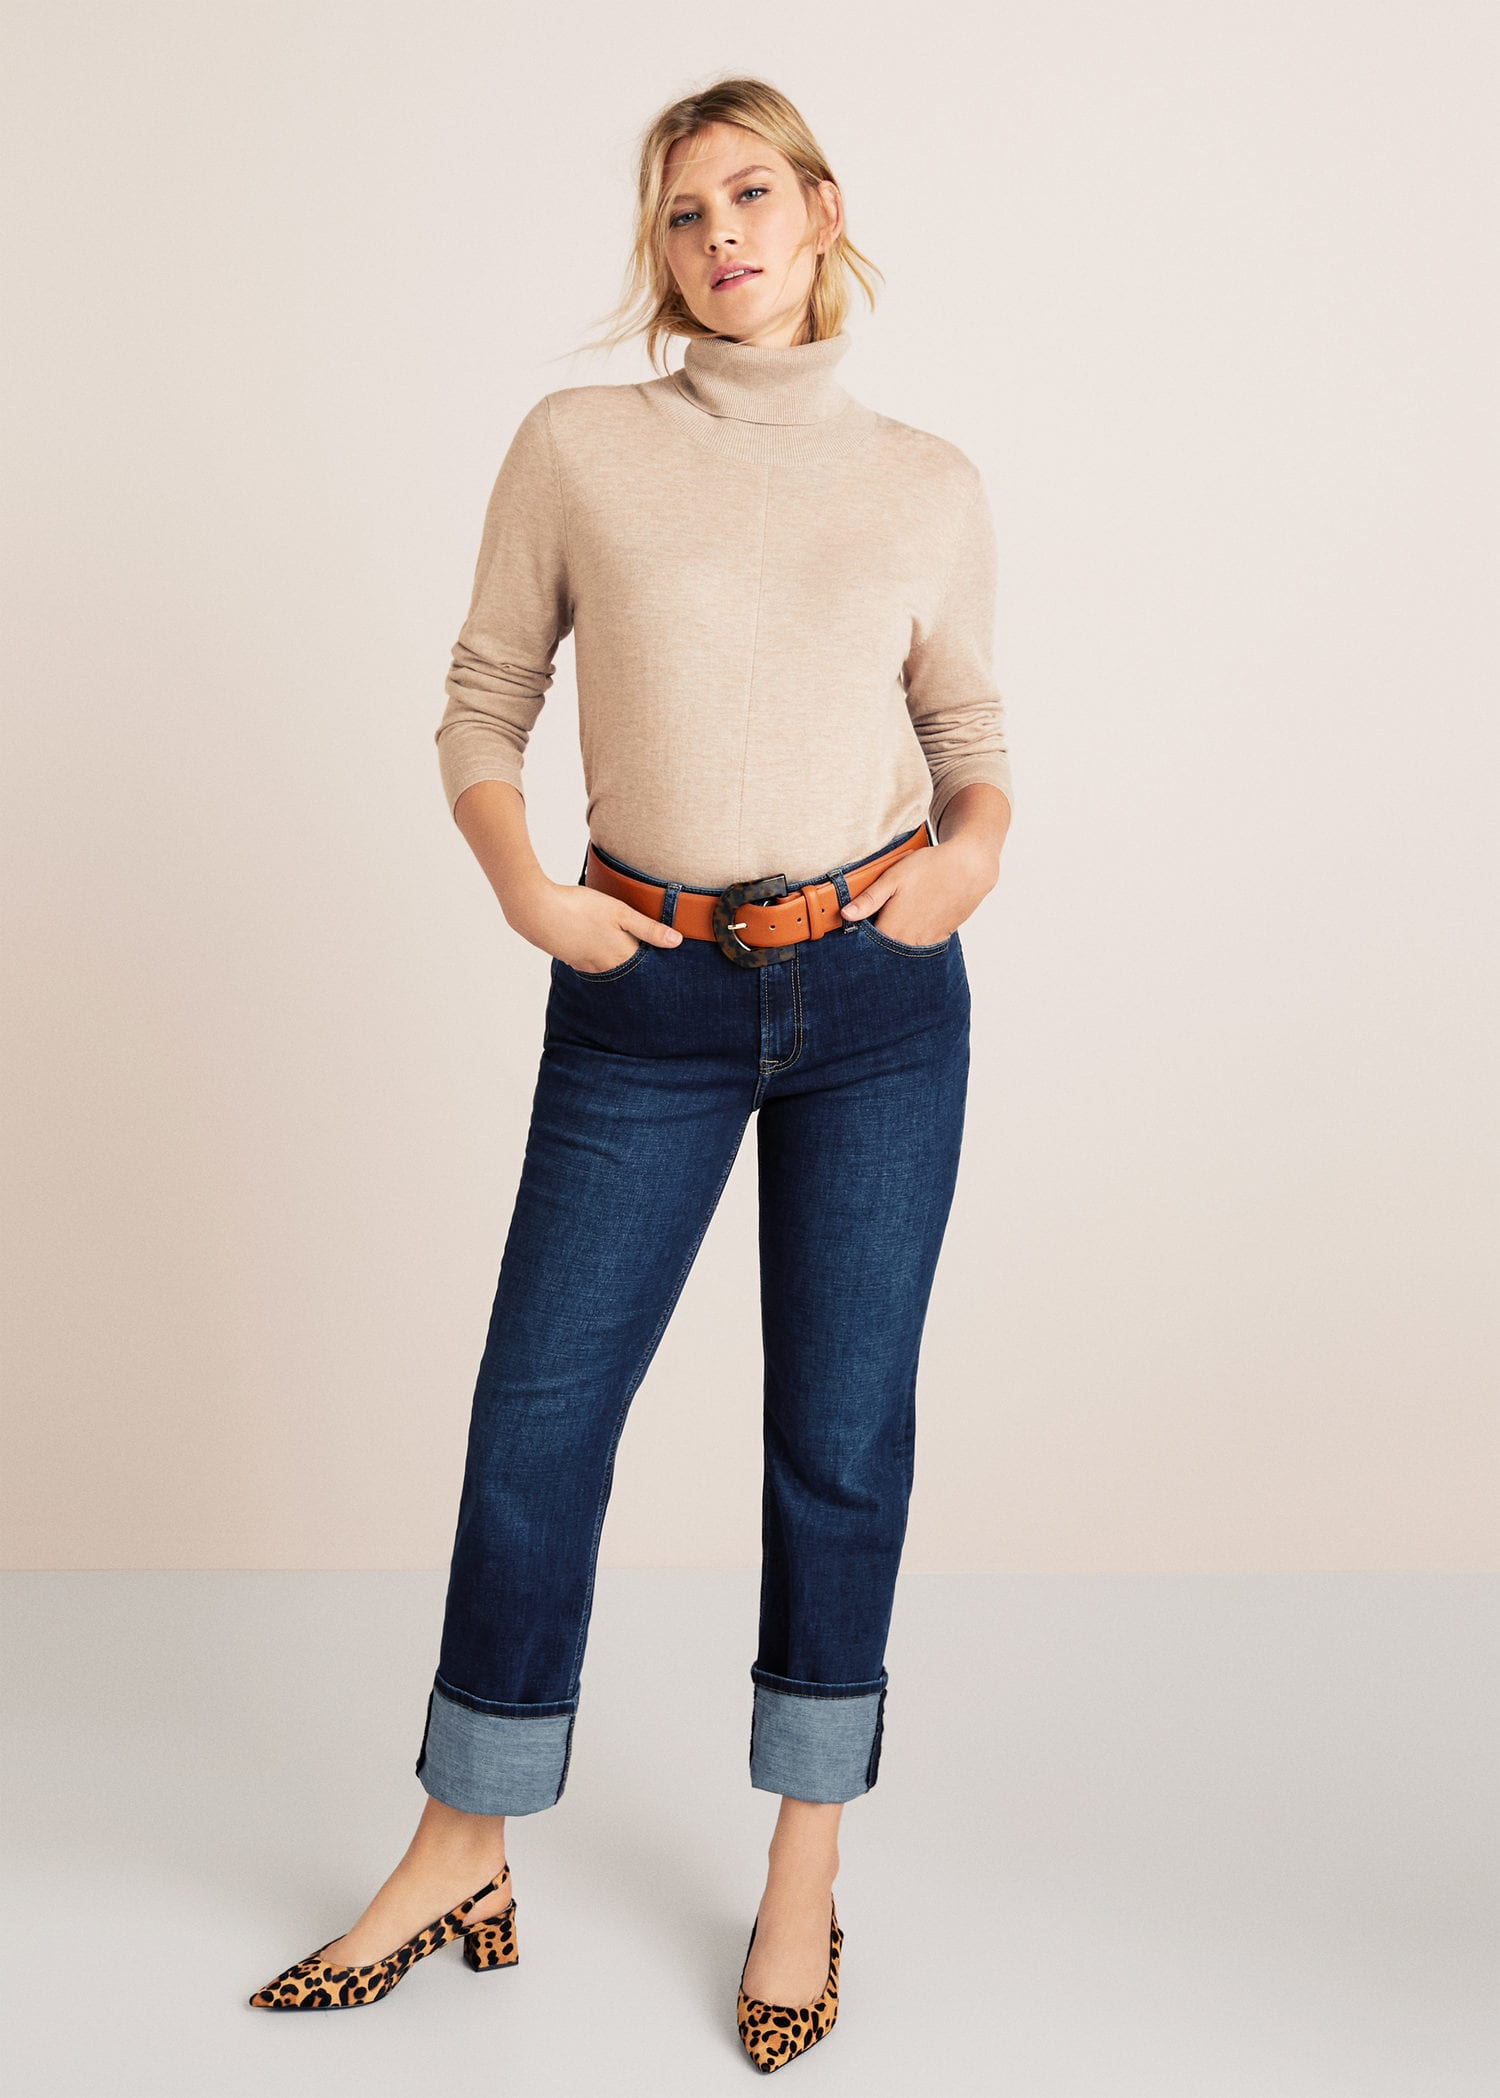 15 Pairs of Plus-Size Skinny Jeans to ShopNow